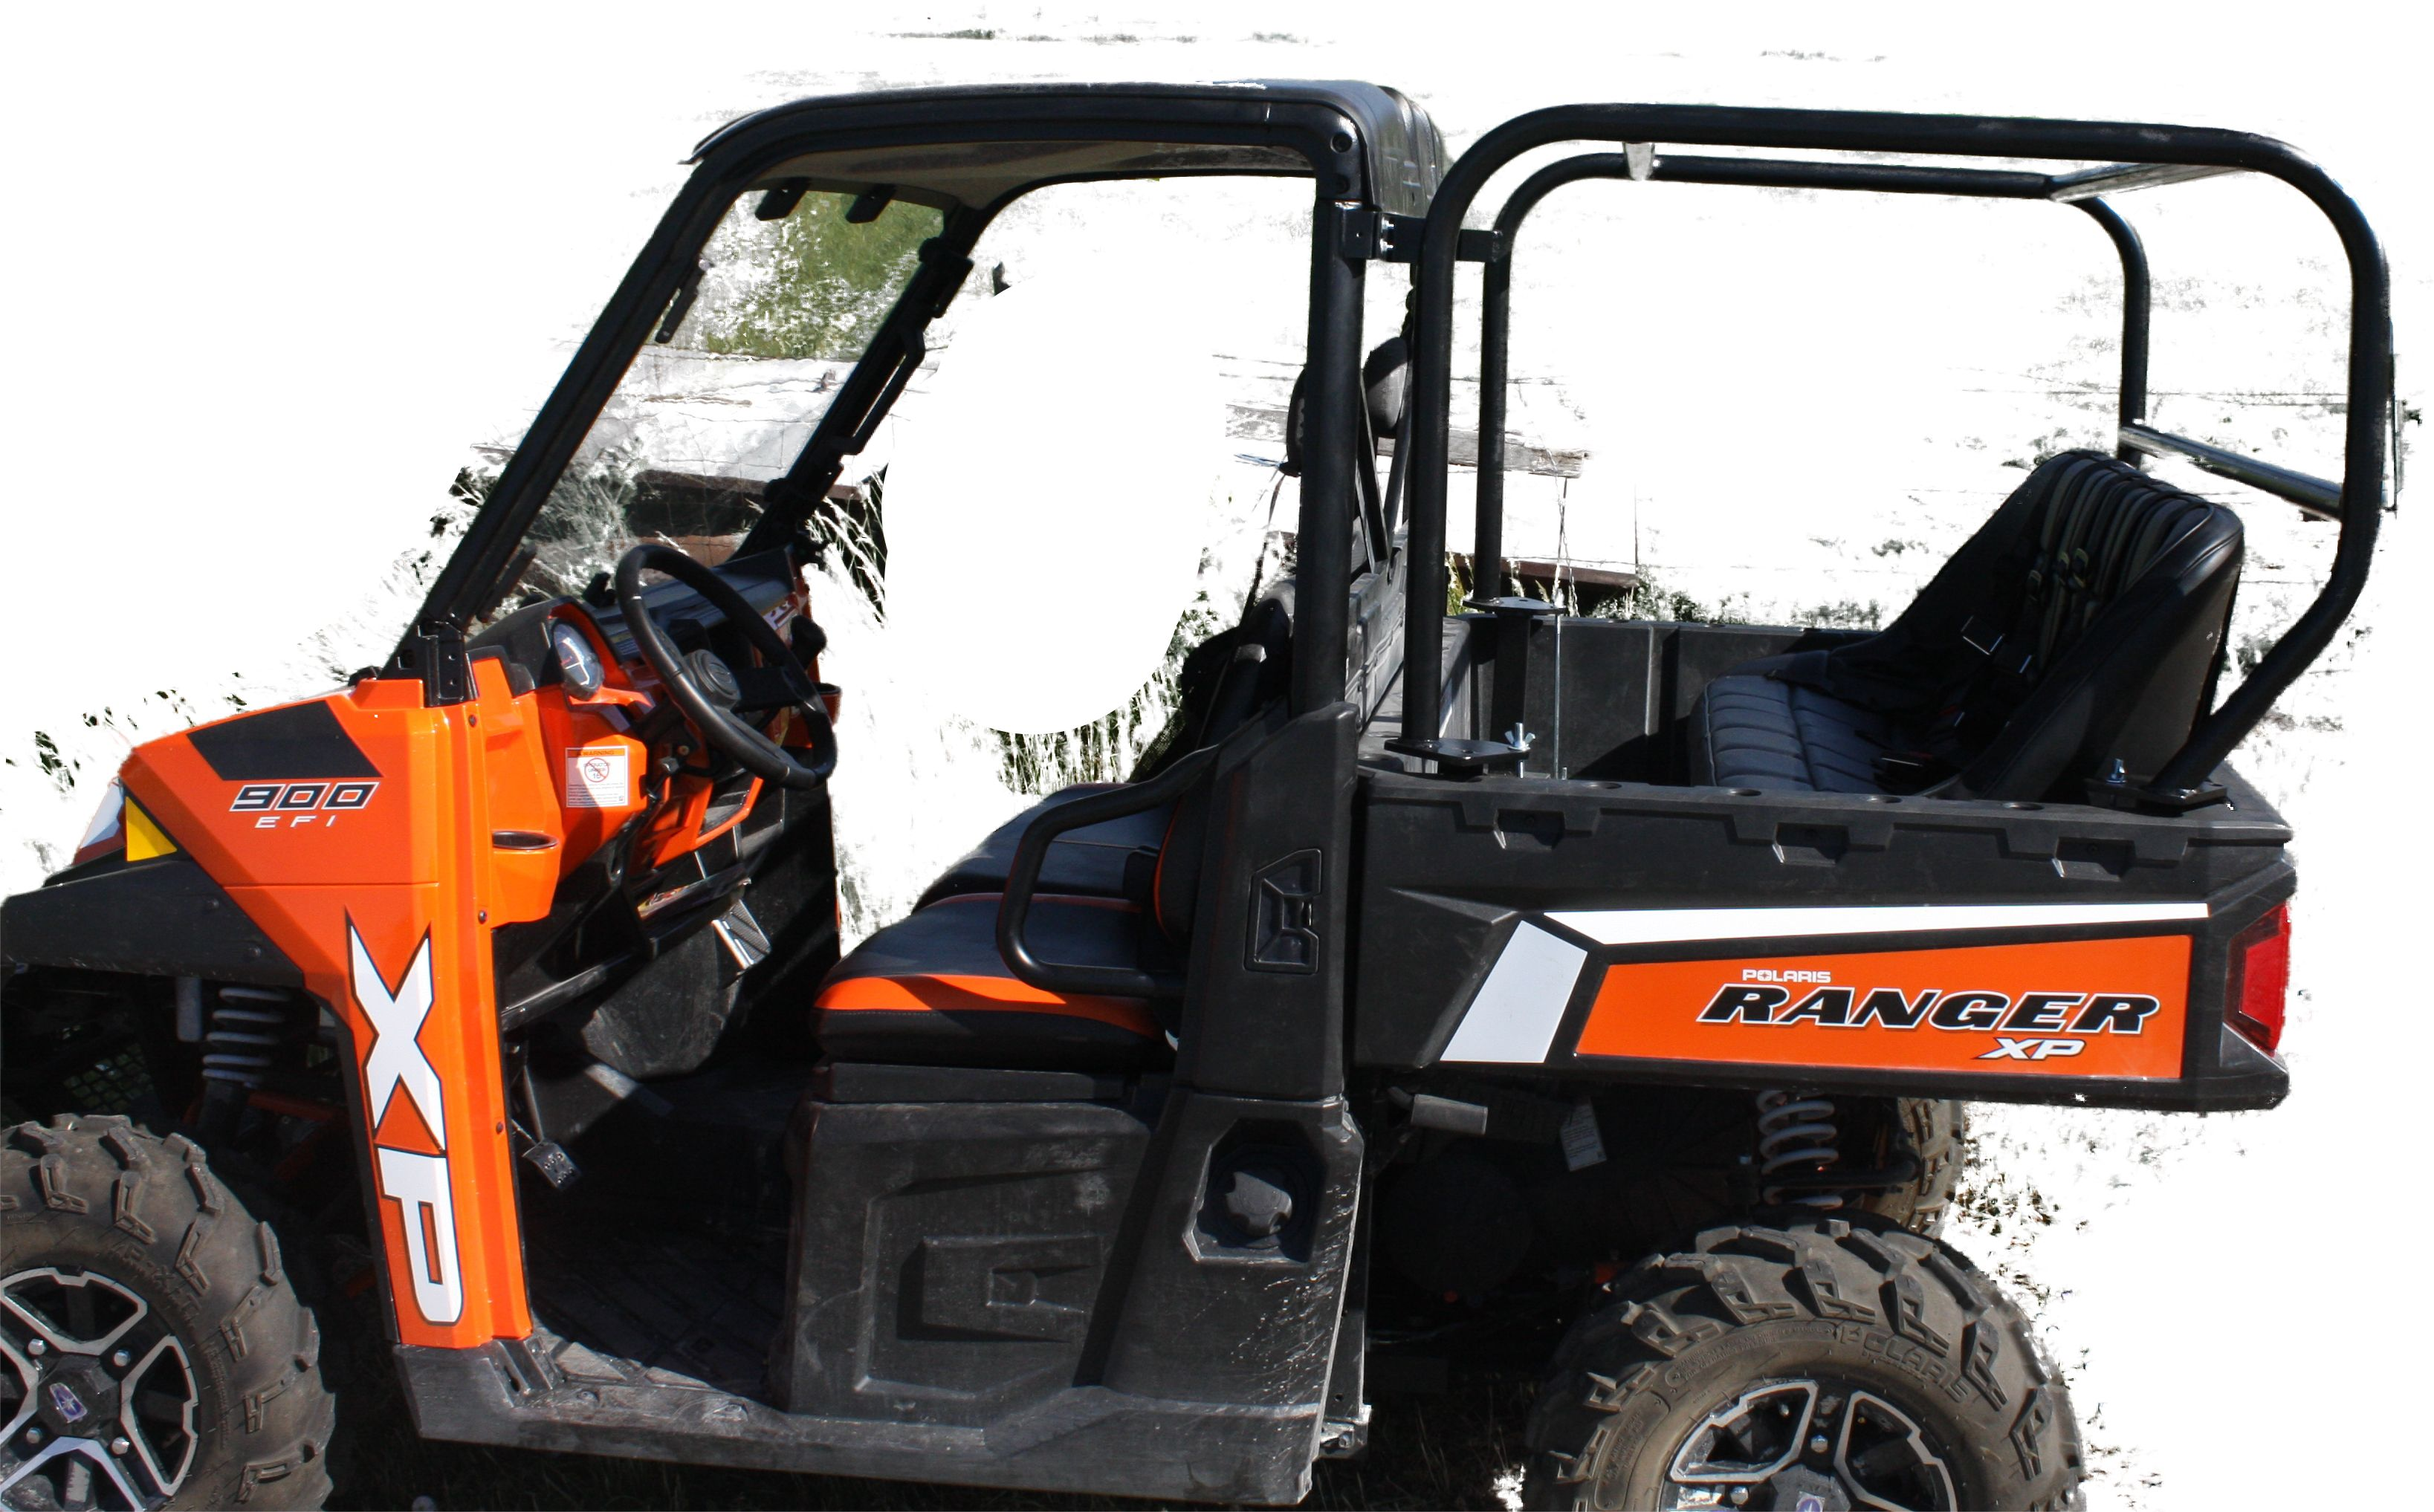 hight resolution of siorfi utv polaris ranger 900xp back seat and roll cage kit this system was designed to come in and out in minutes no drilling or welding to the bed